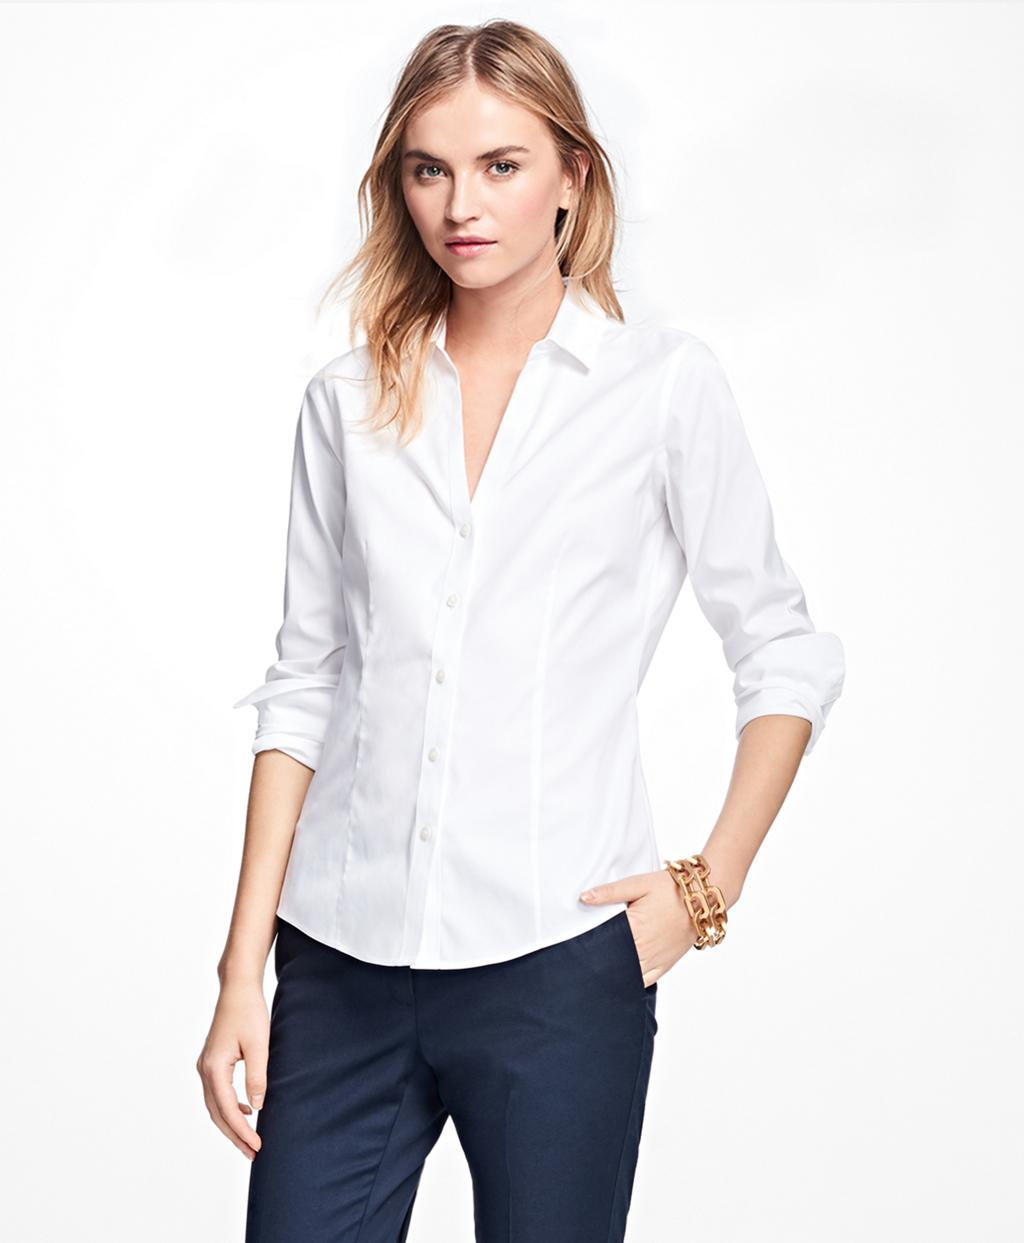 Lyst brooks brothers non iron fitted dress shirt in white for Brooks brothers non iron shirts review